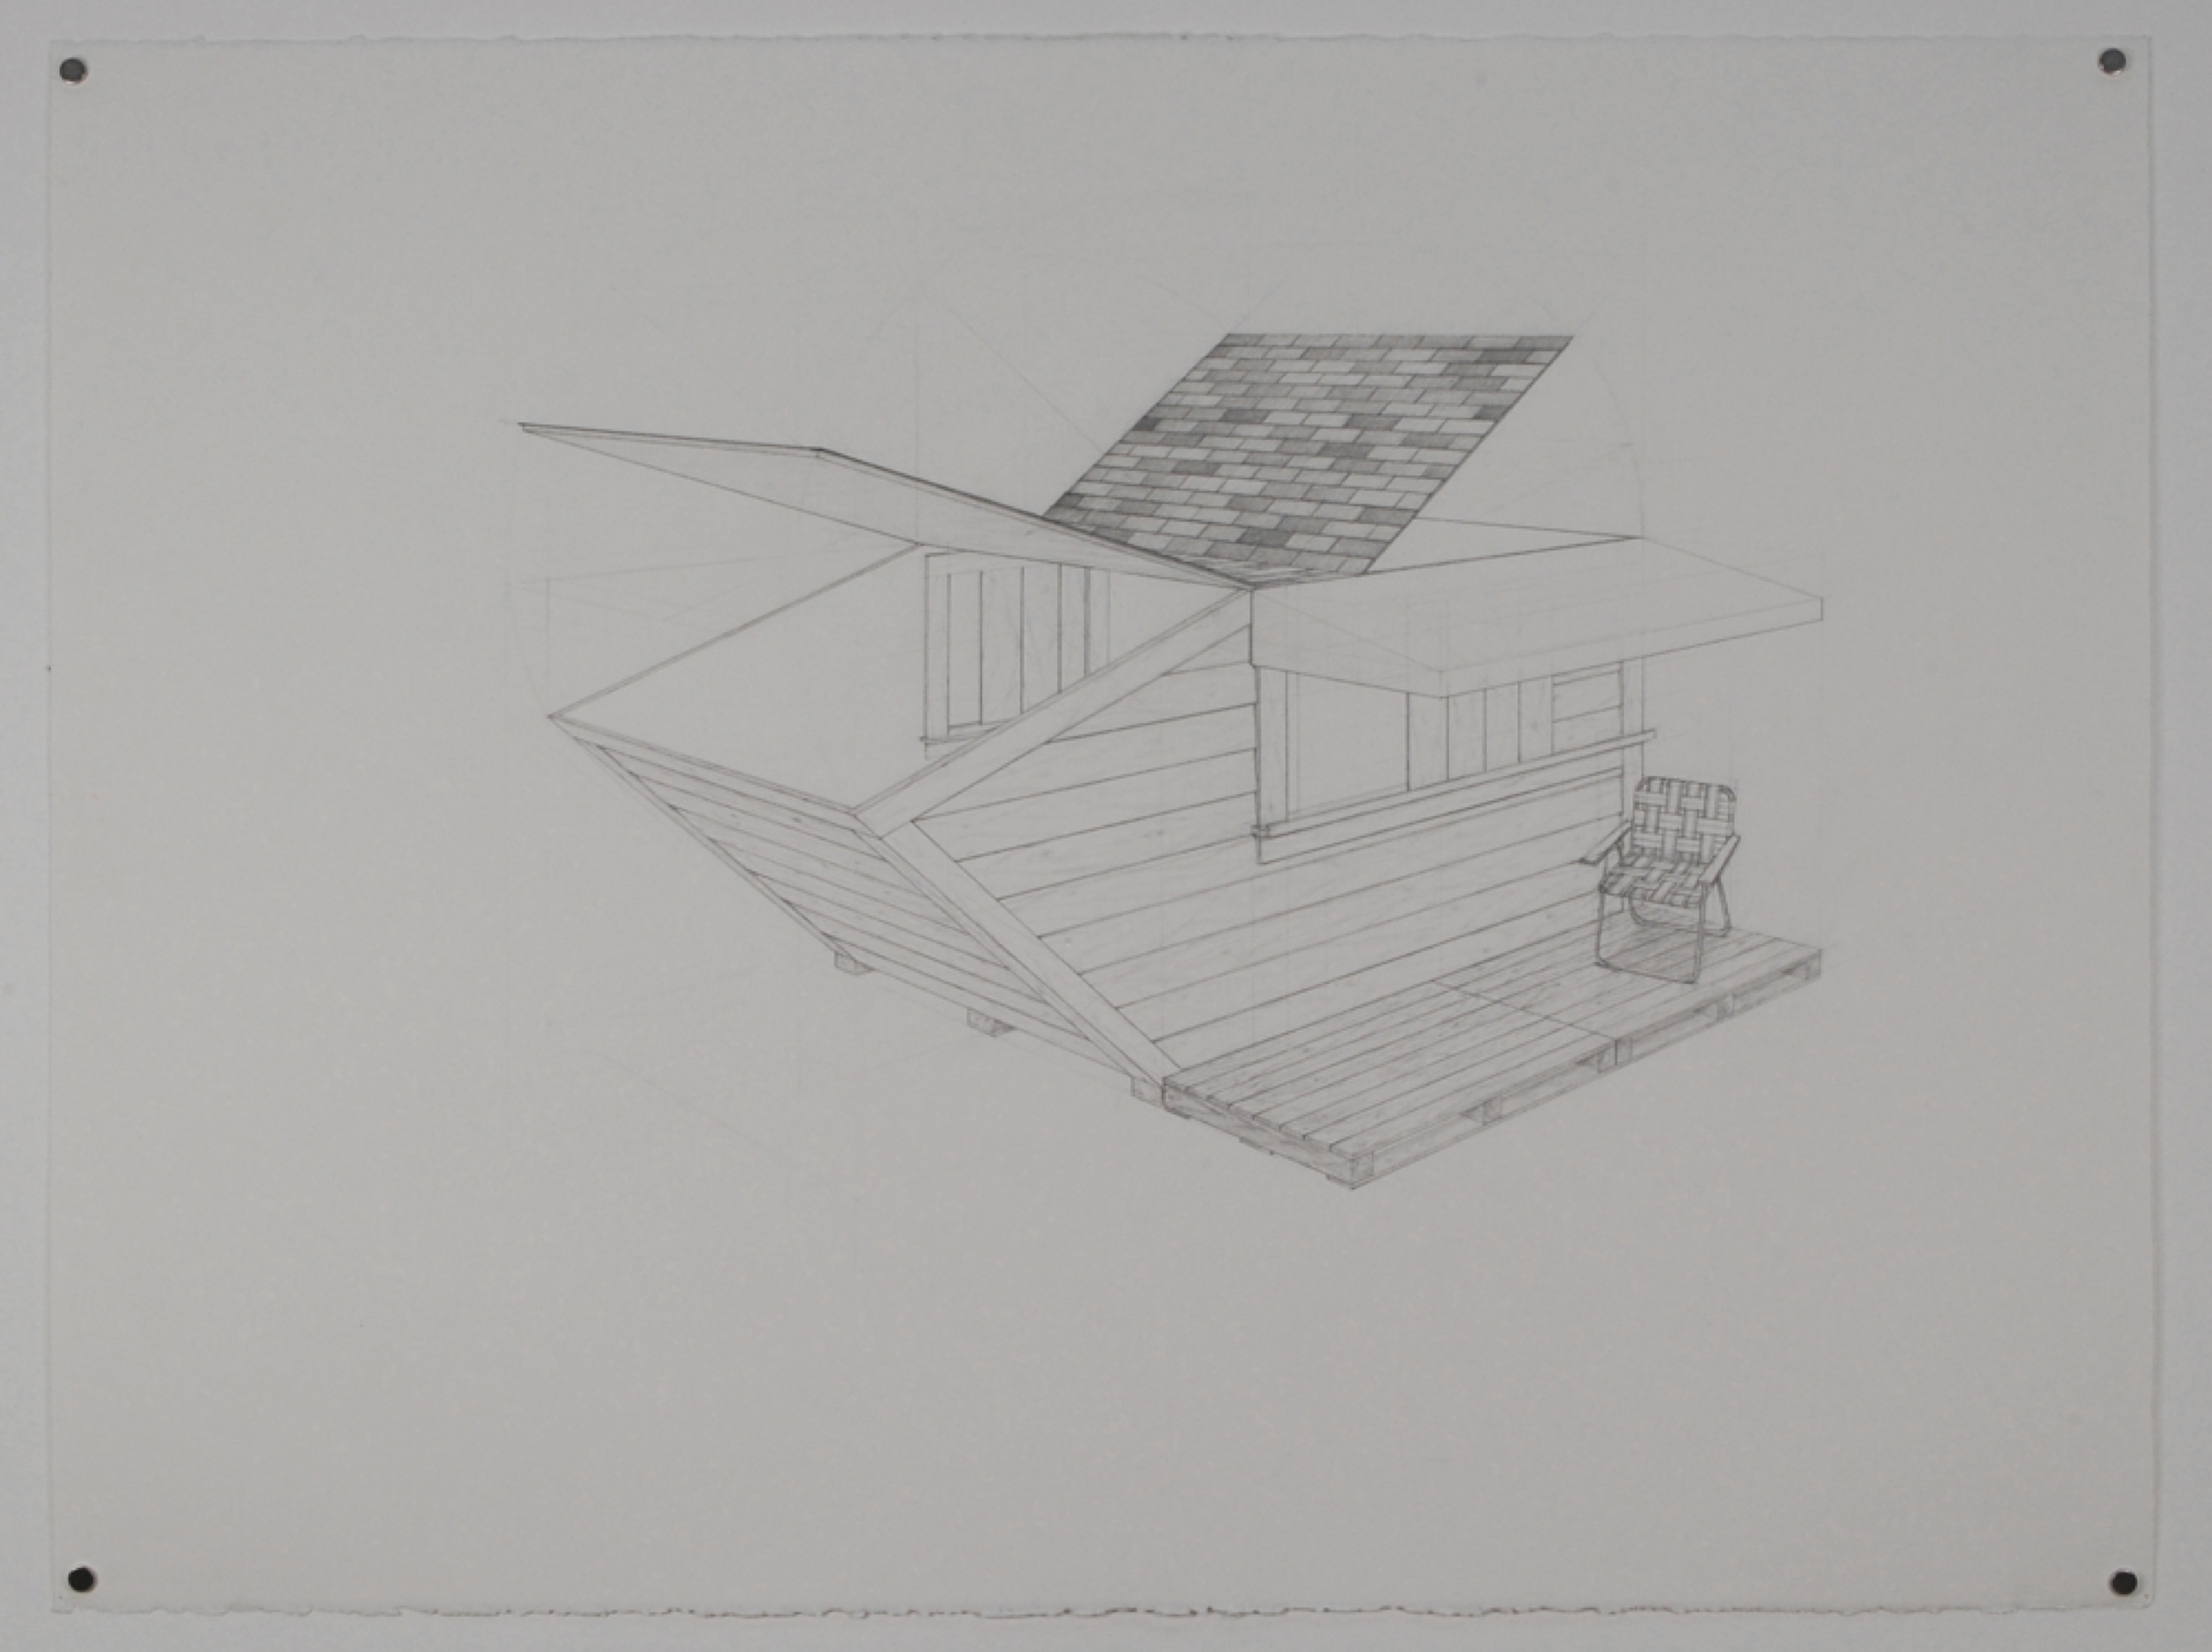 "Dumpster 1 / graphite on paper / 22 x 30"" / SOLD"